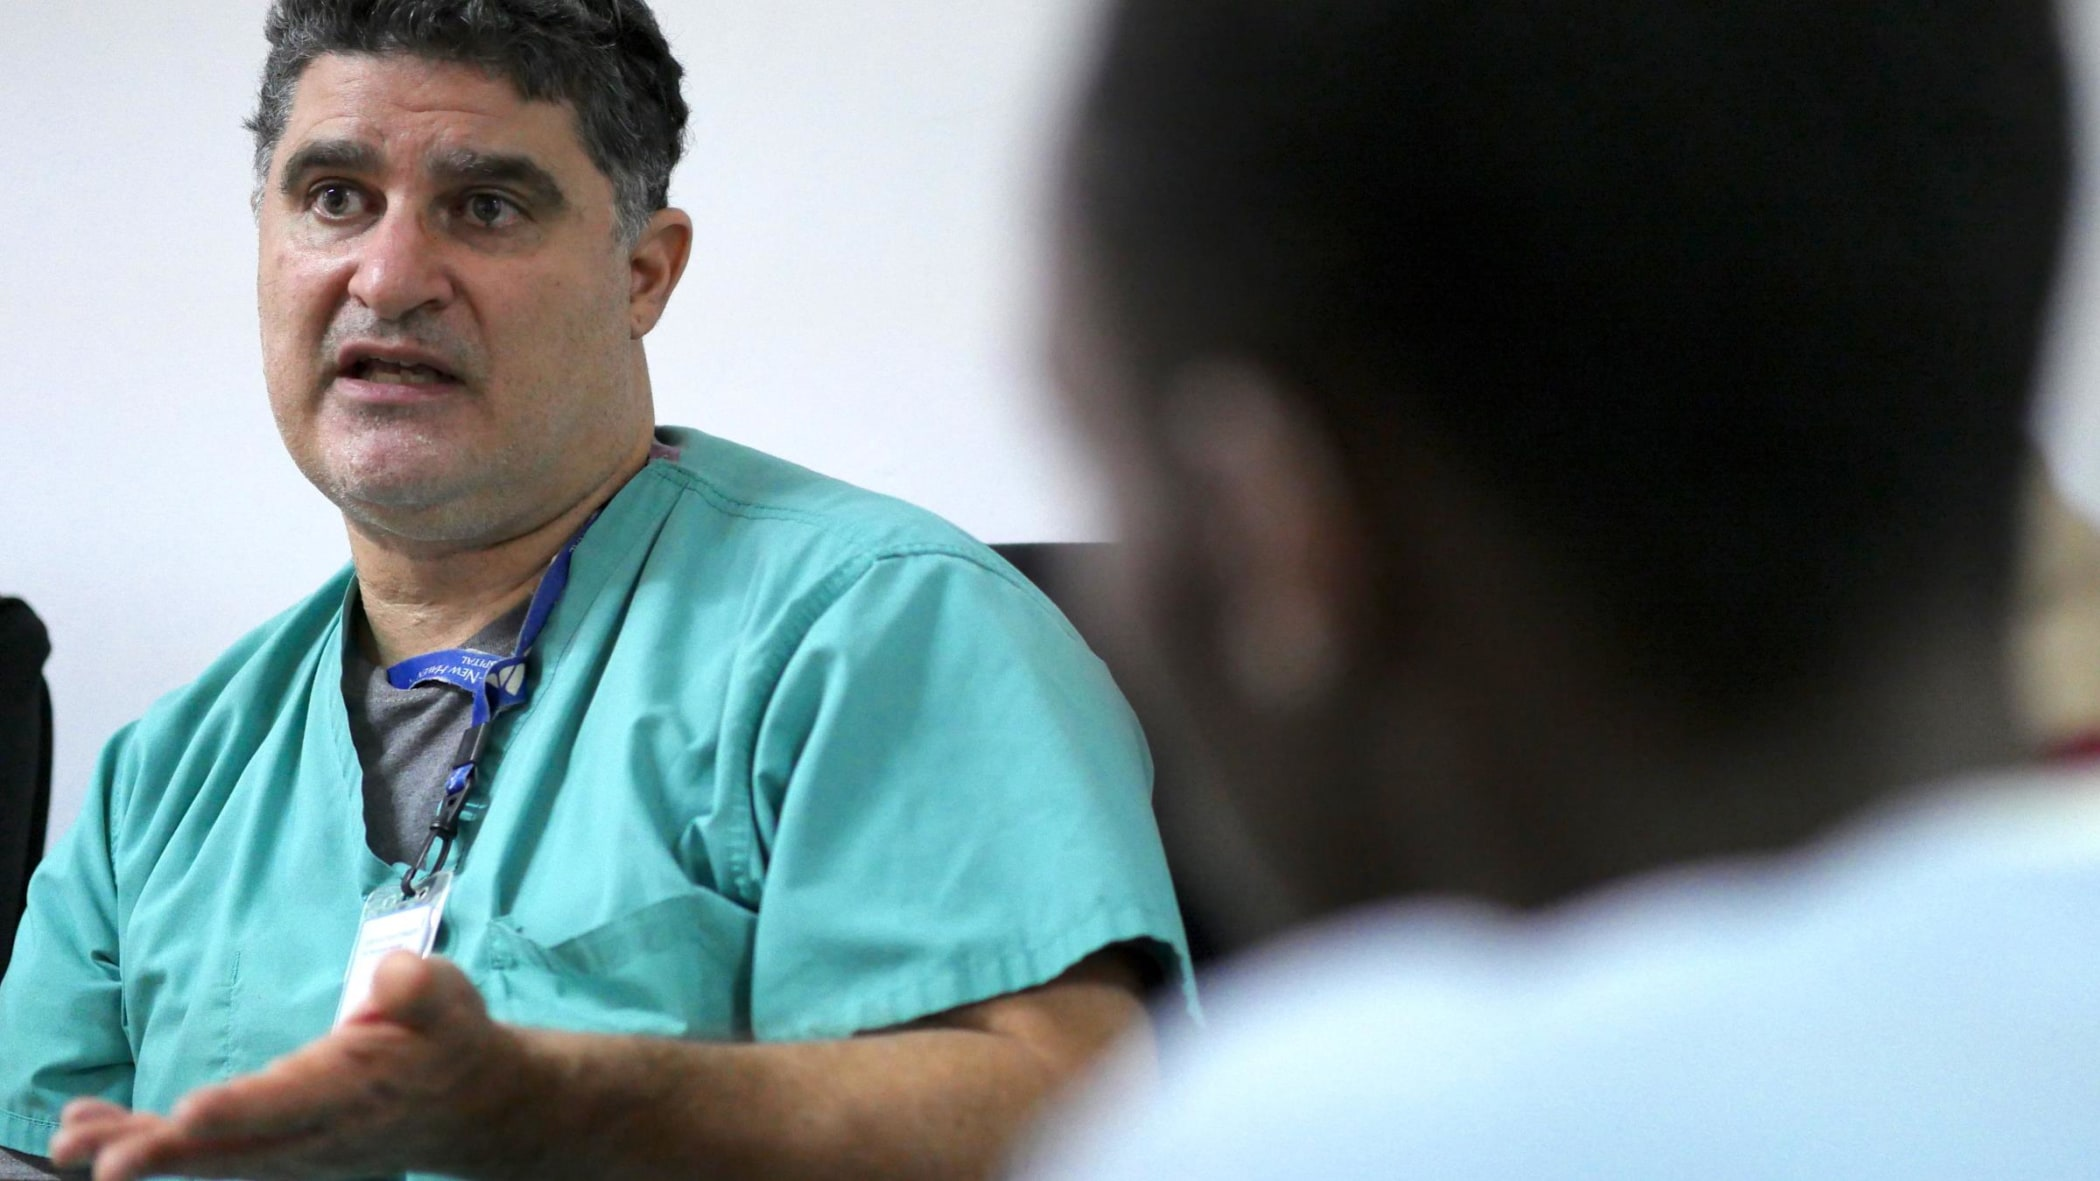 Dr. Douglas Silin during a group discussion with Tanzanian IR residents.